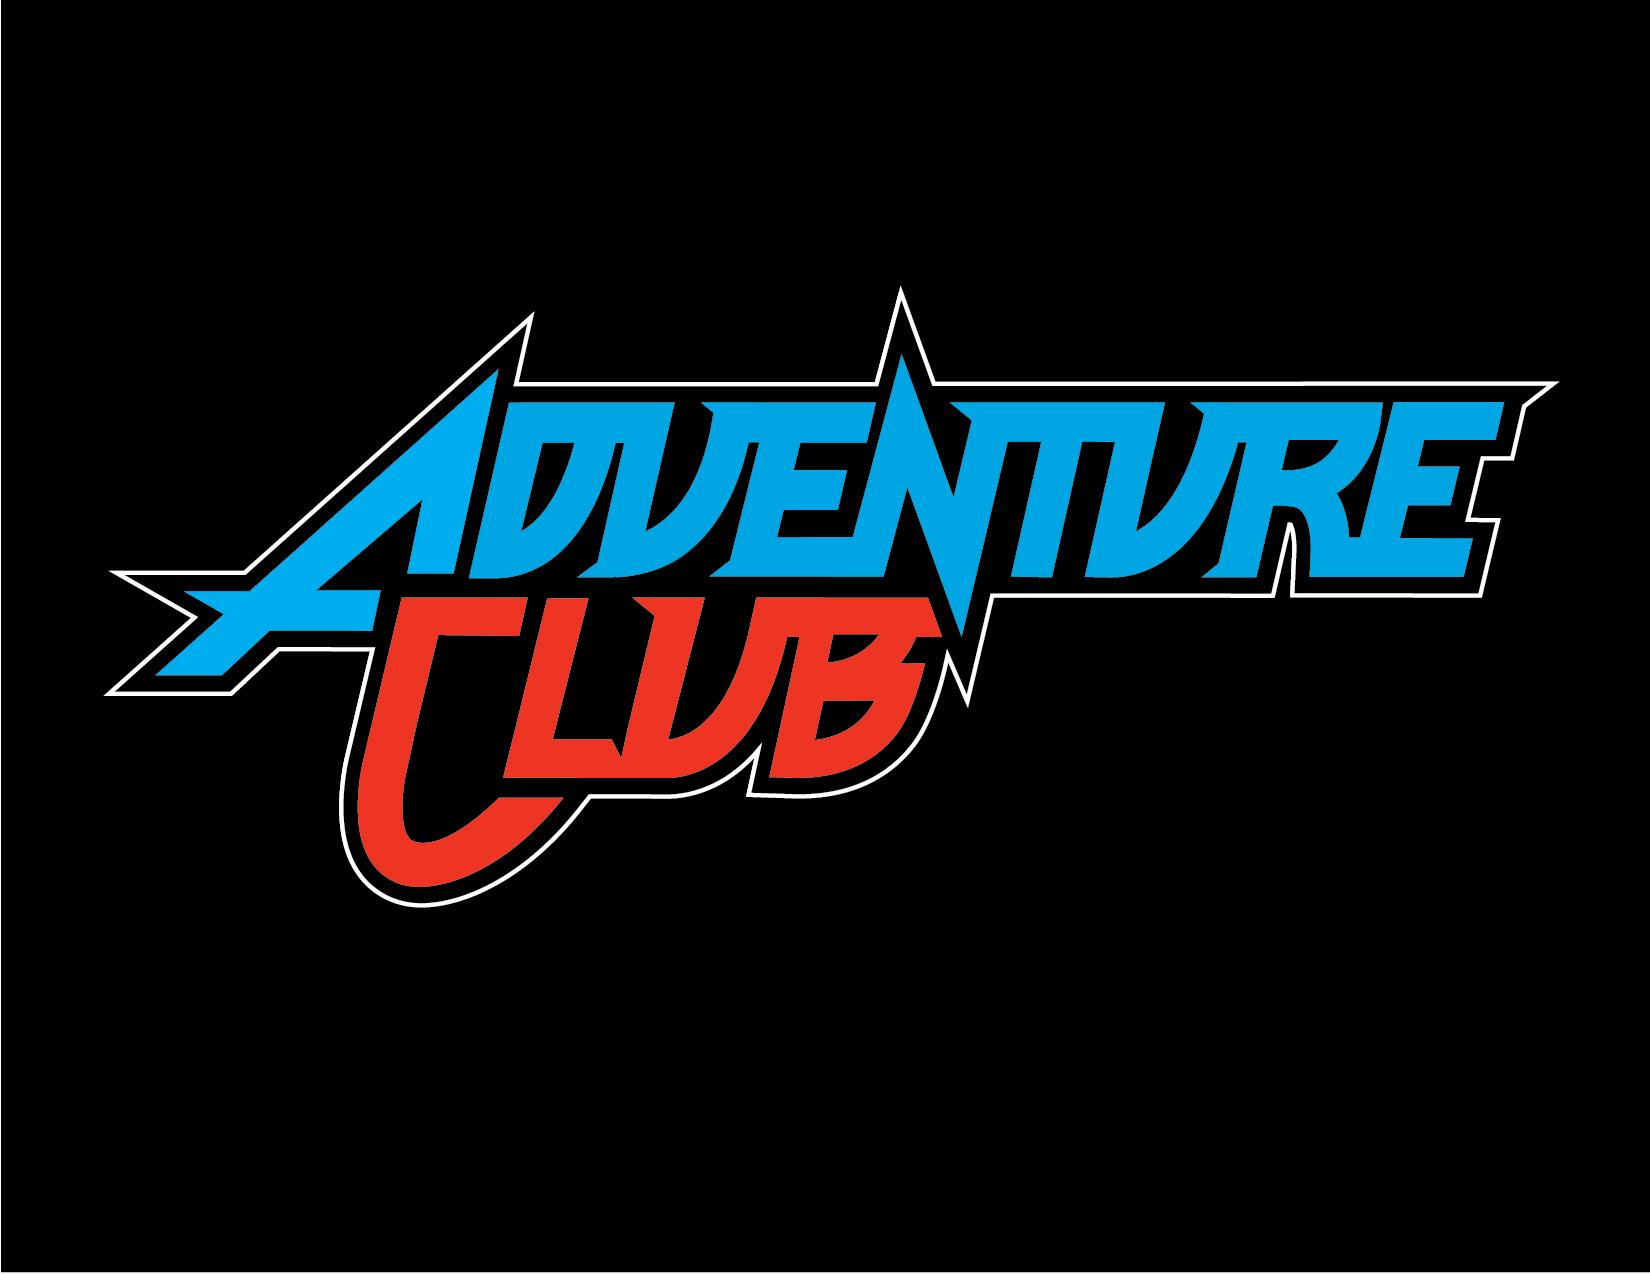 File:Adventure club logo.png - Wikimedia Commons